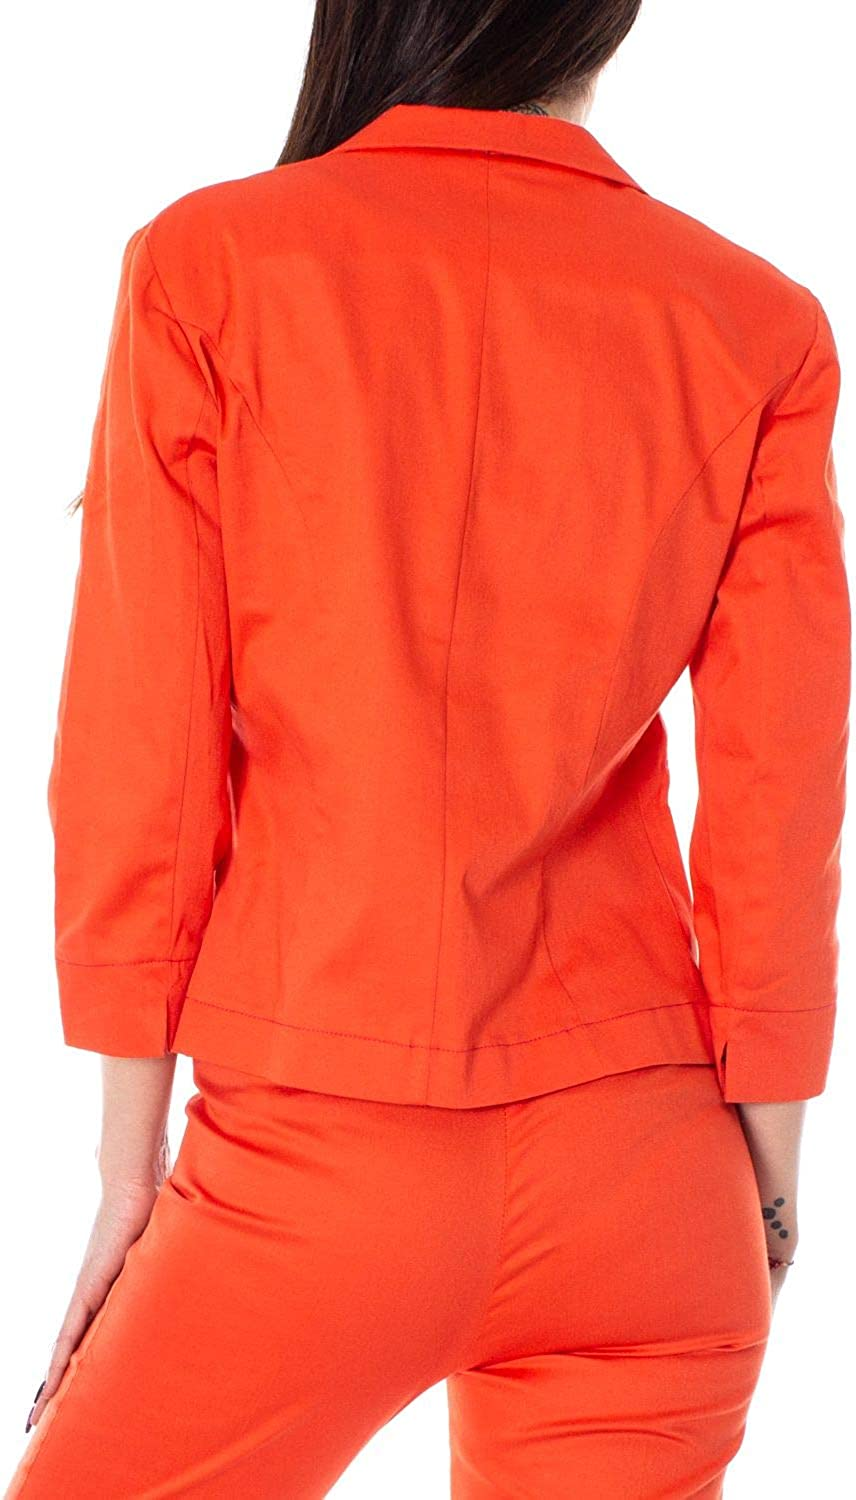 AK/È Luxury Fashion Womens Blazer Summer Orange